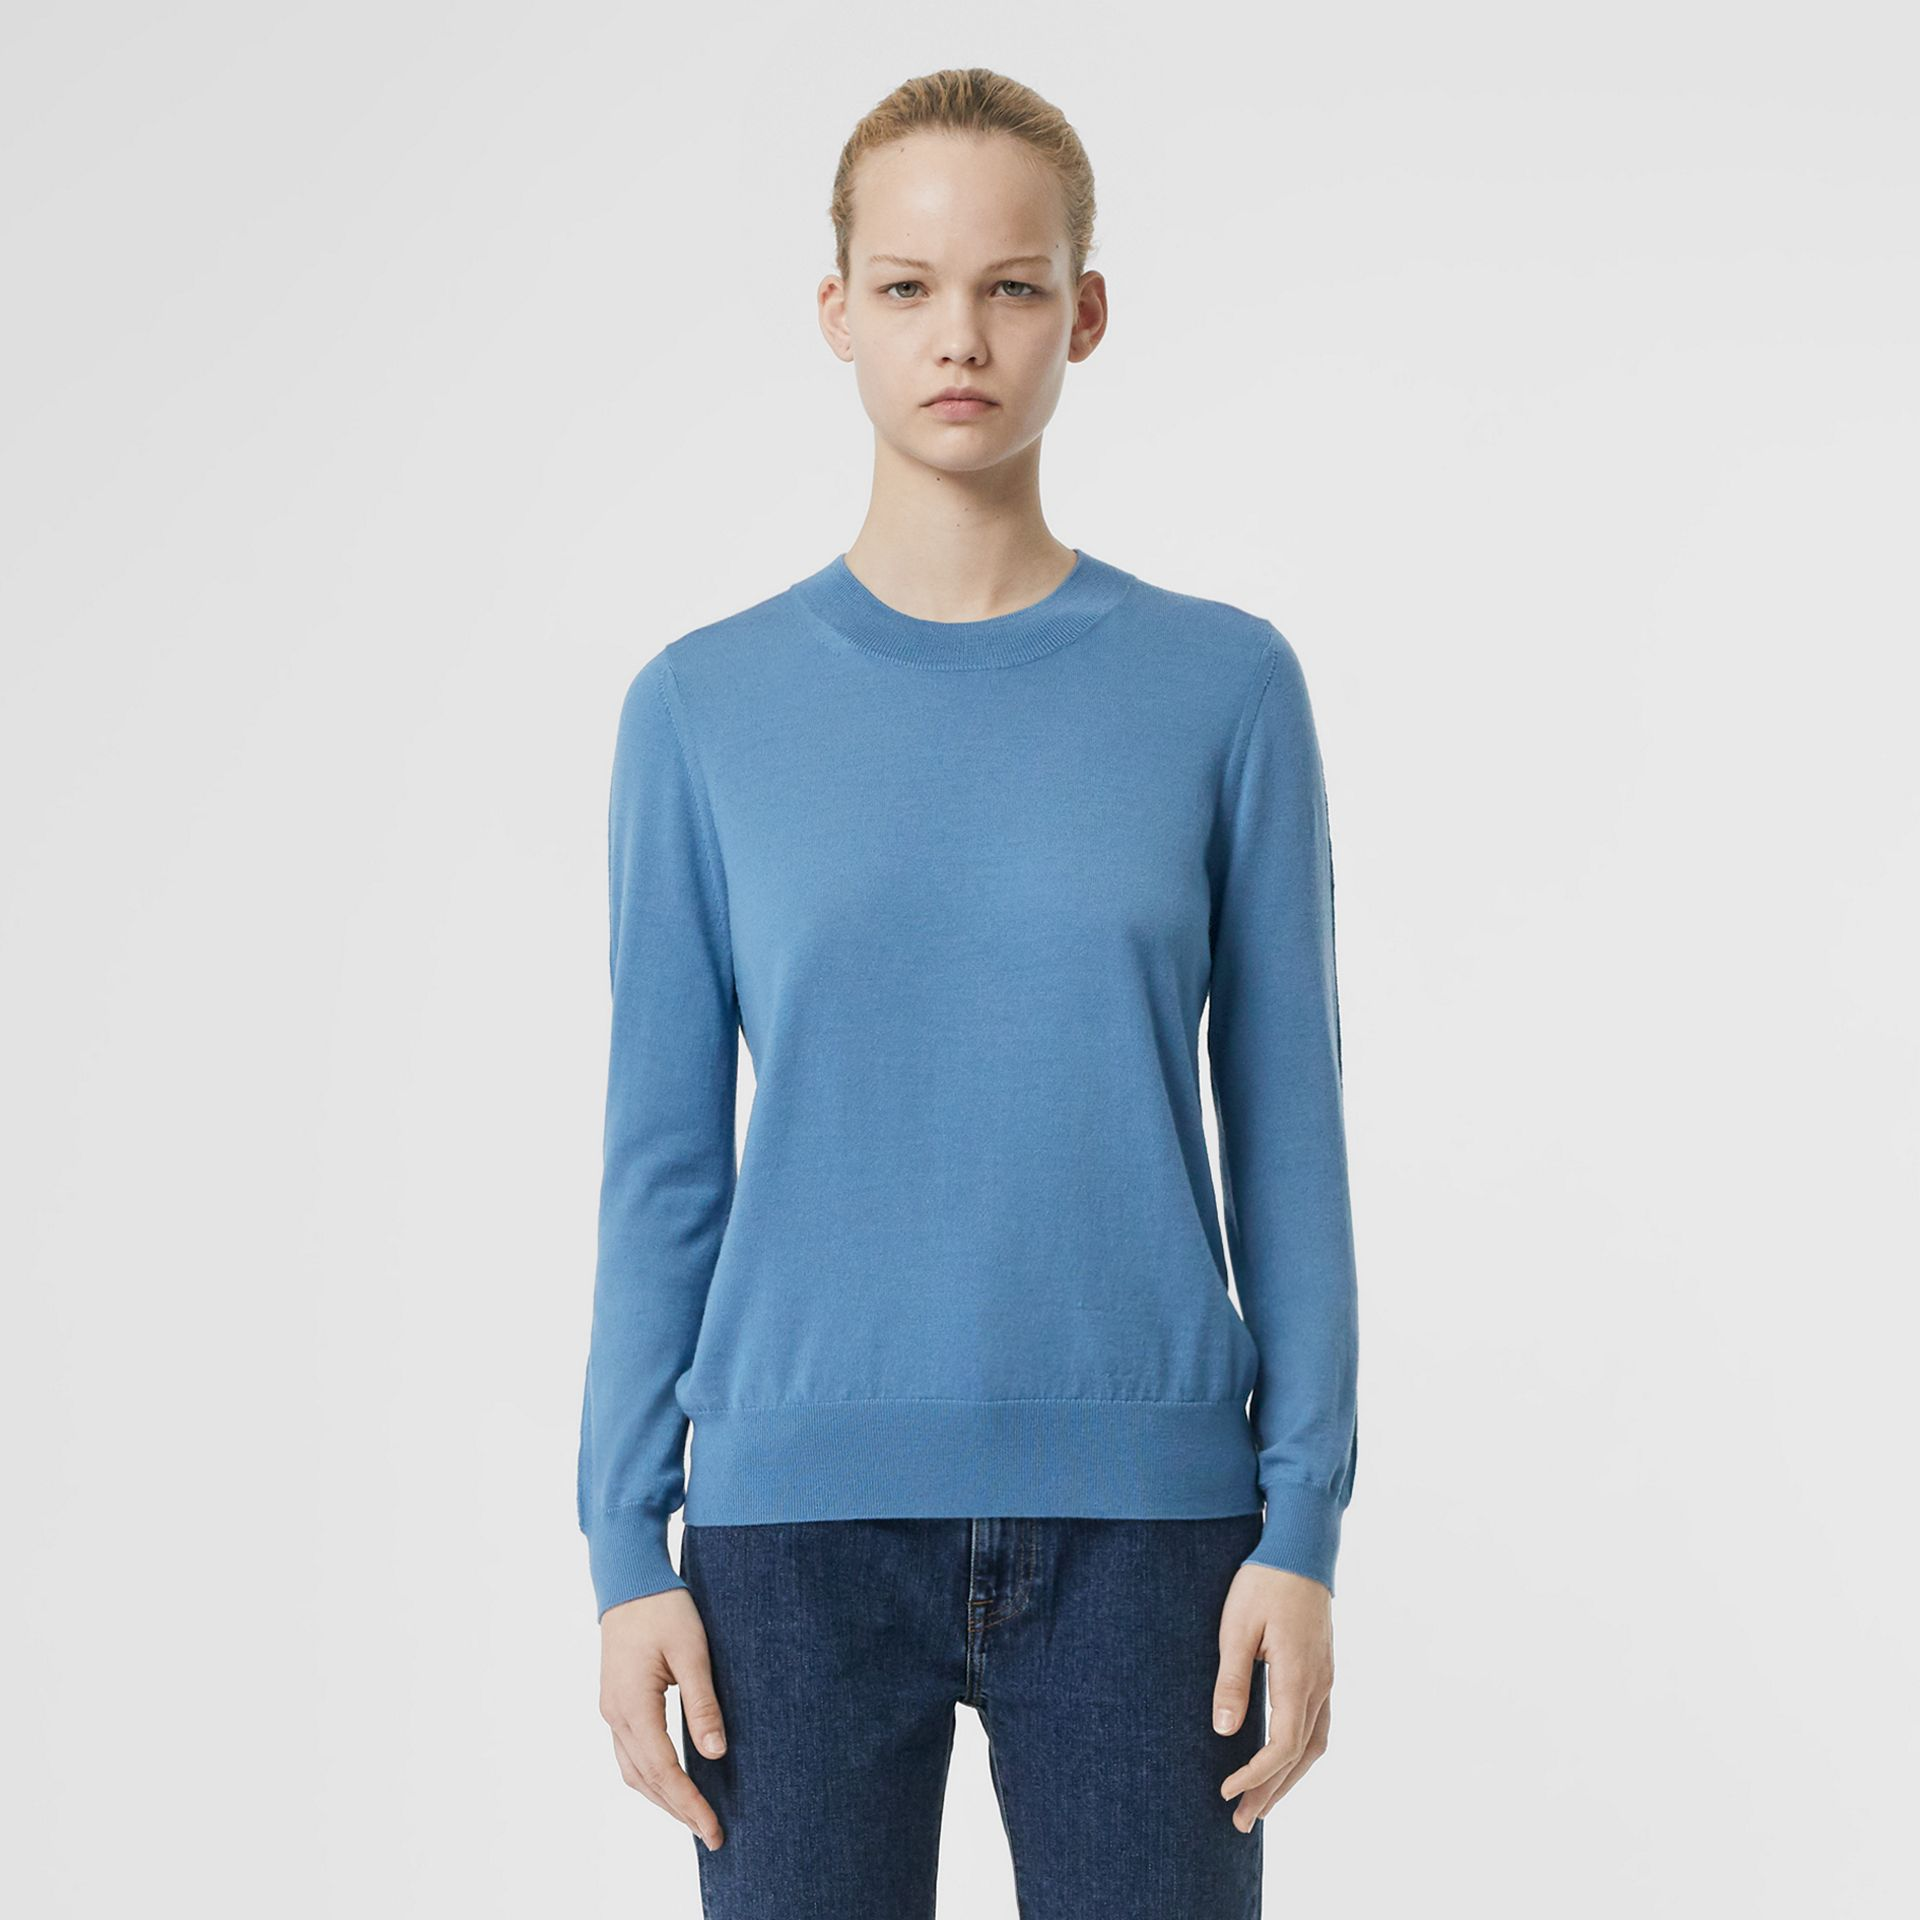 Logo Detail Merino Wool Sweater in Pebble Blue - Women | Burberry - gallery image 5